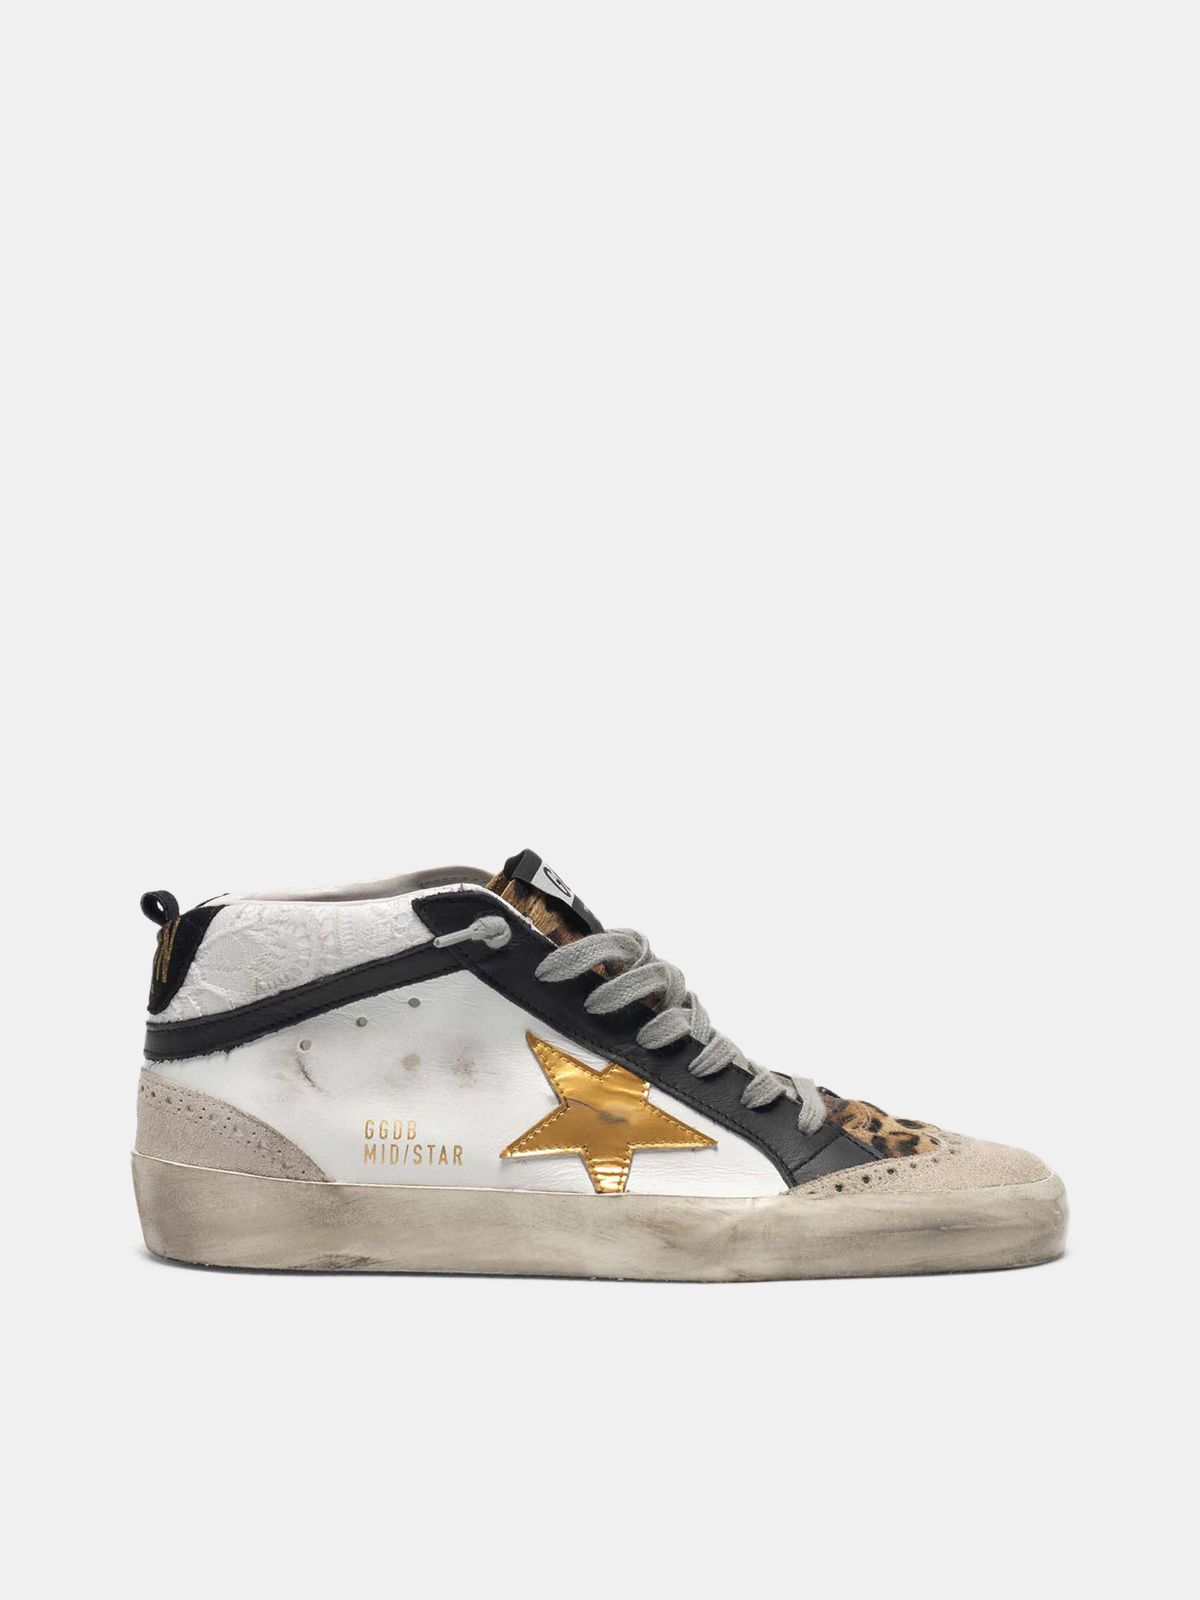 Golden Goose - White Mid-Star sneakers with leopard-print pony skin insert in